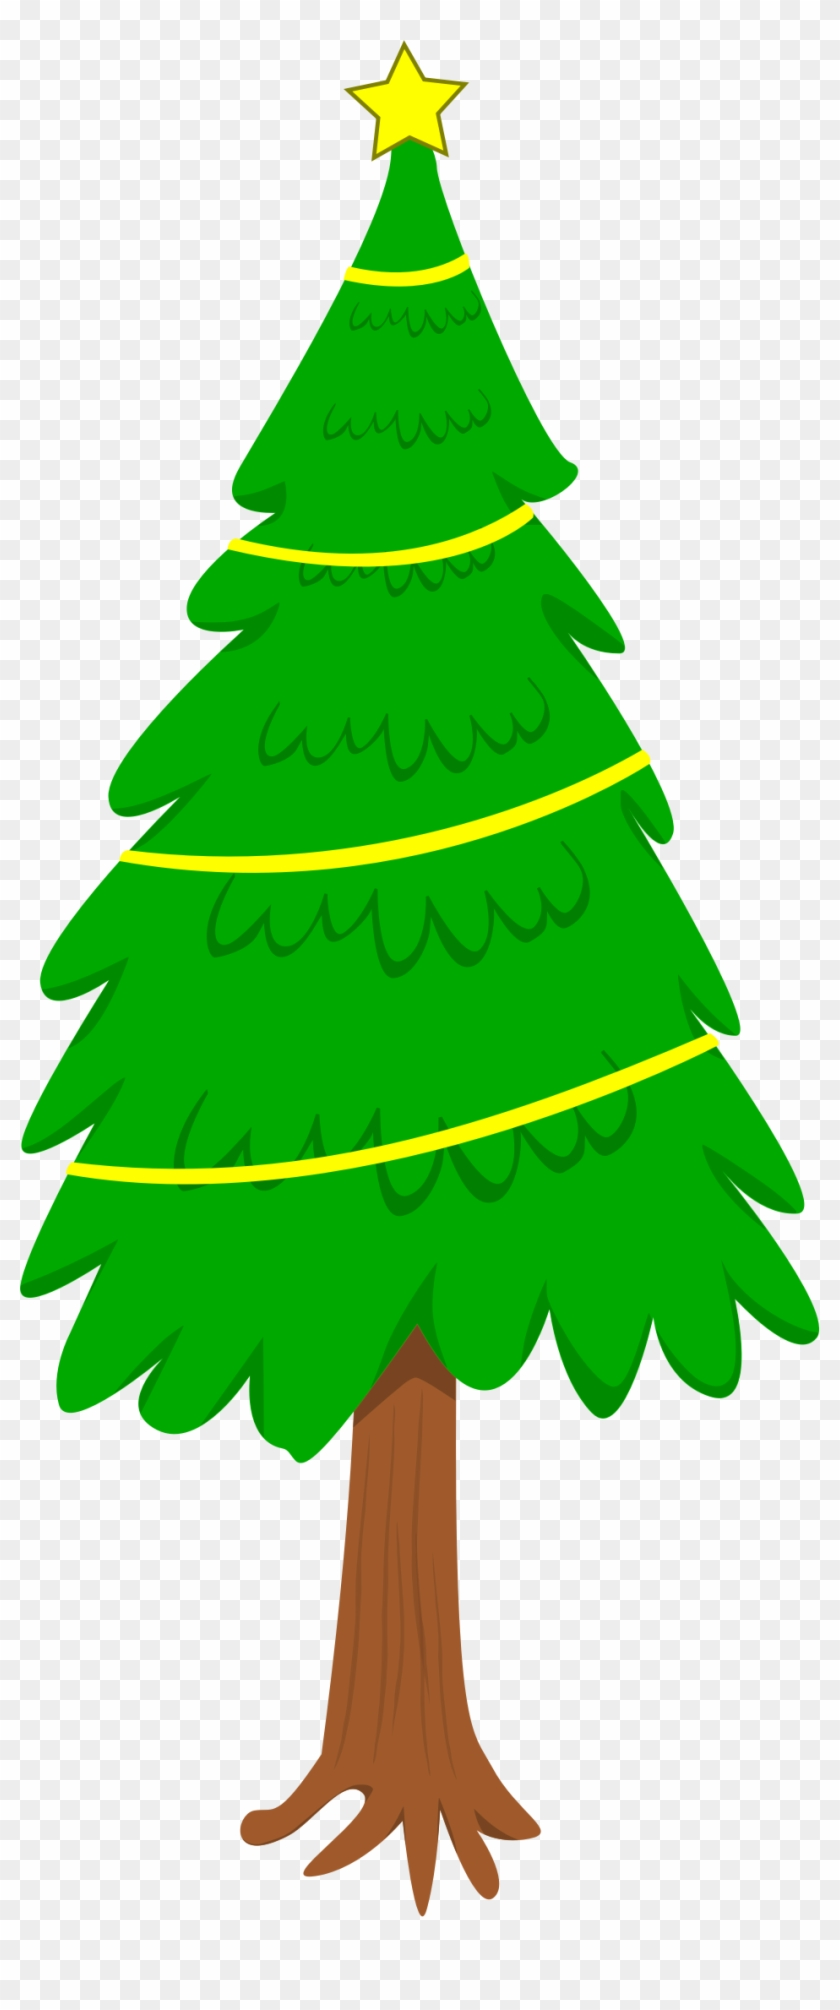 Christmas Tree - Tall Christmas Tree Clipart #31822